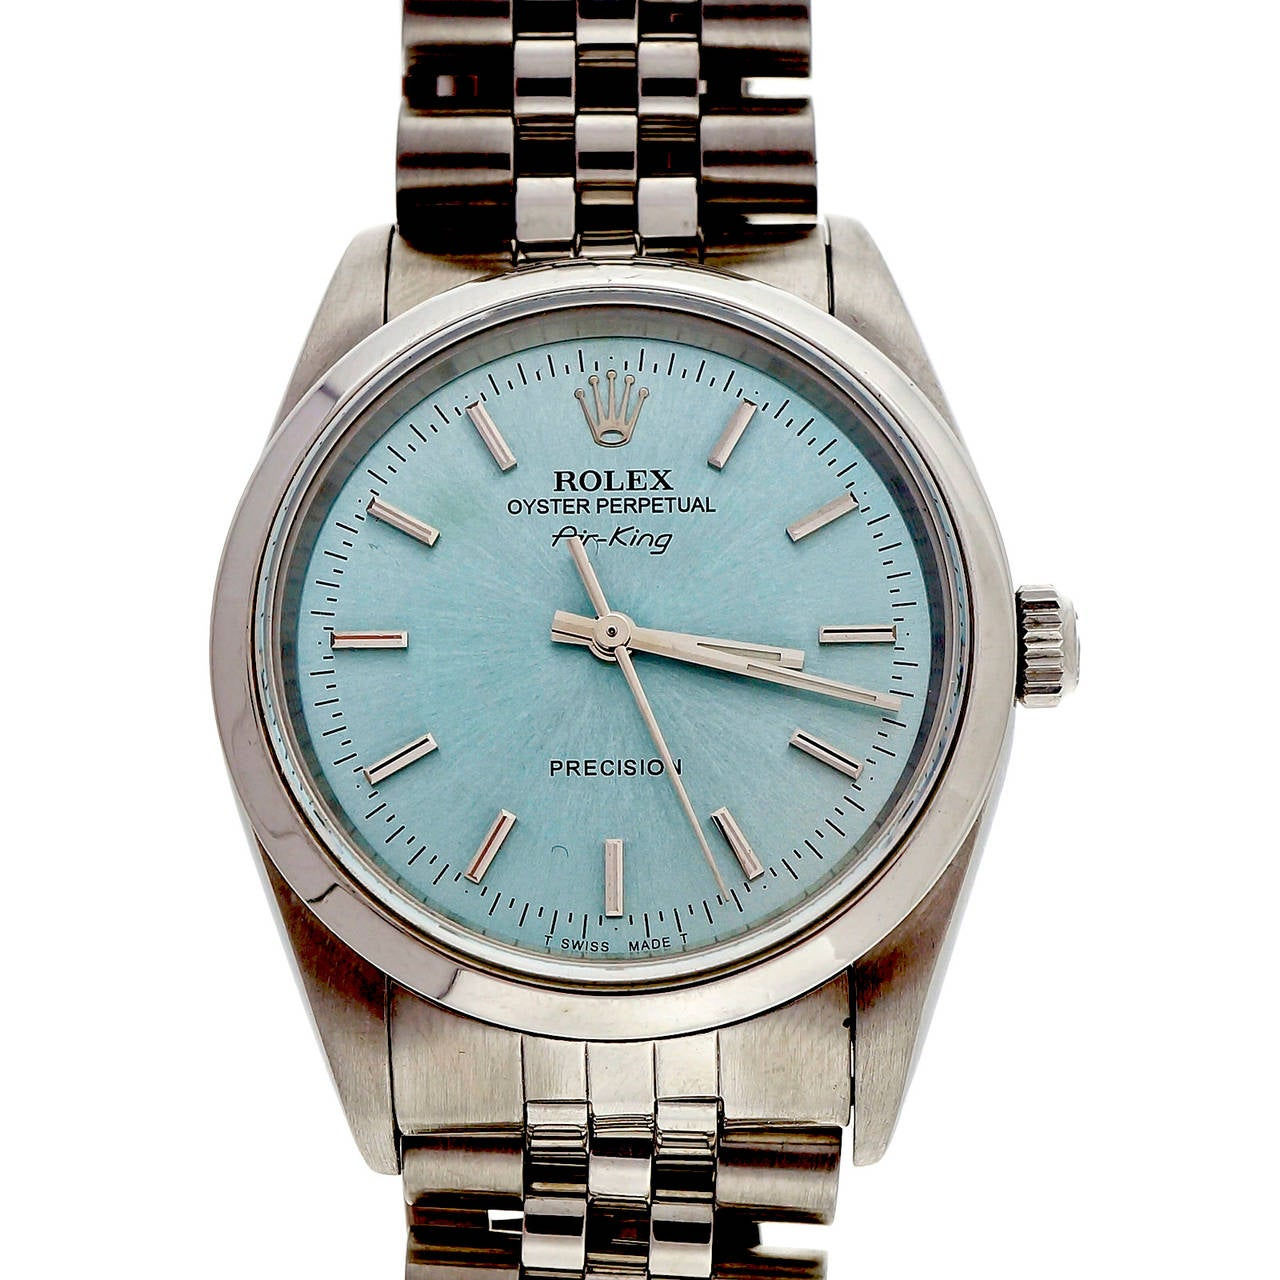 Rolex Stainless Steel Oyster Perpetual Air King Wristwatch Ref 14000 5